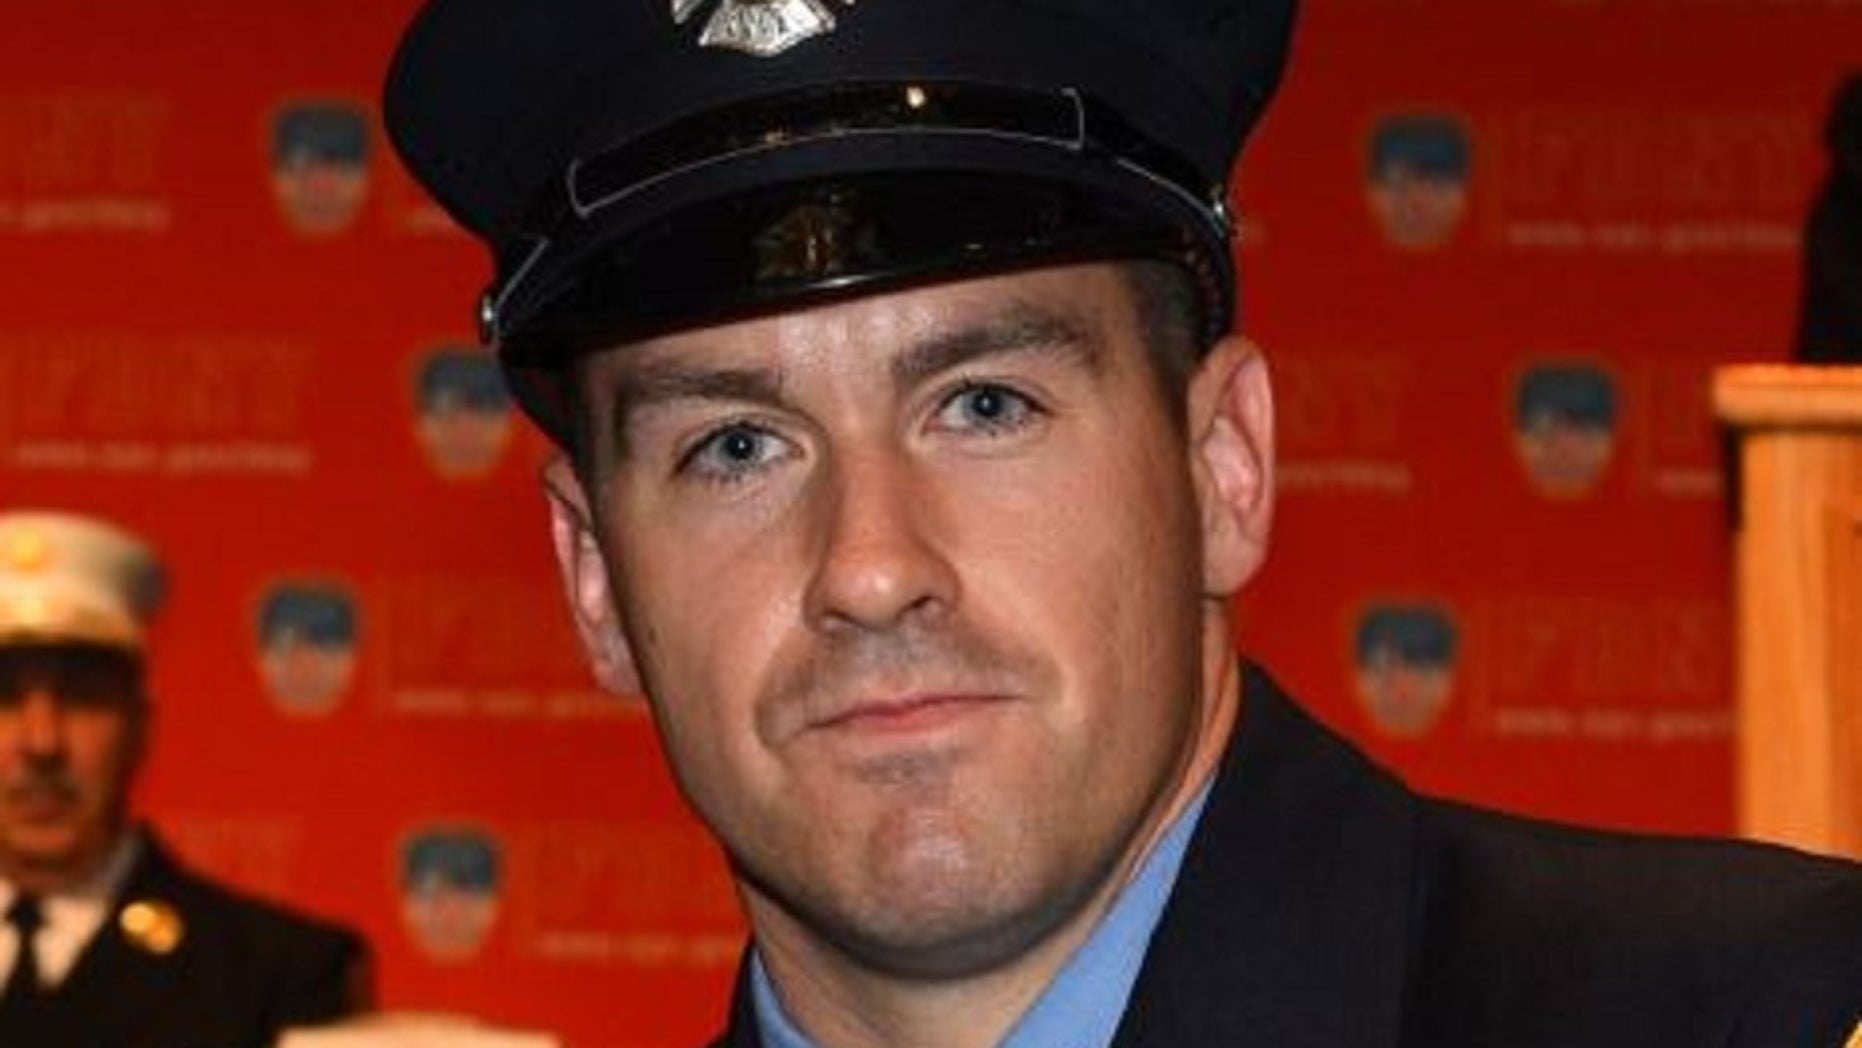 Steven Pollard, an FDNY firefighter, died Sunday while trying to rescue two motorists.